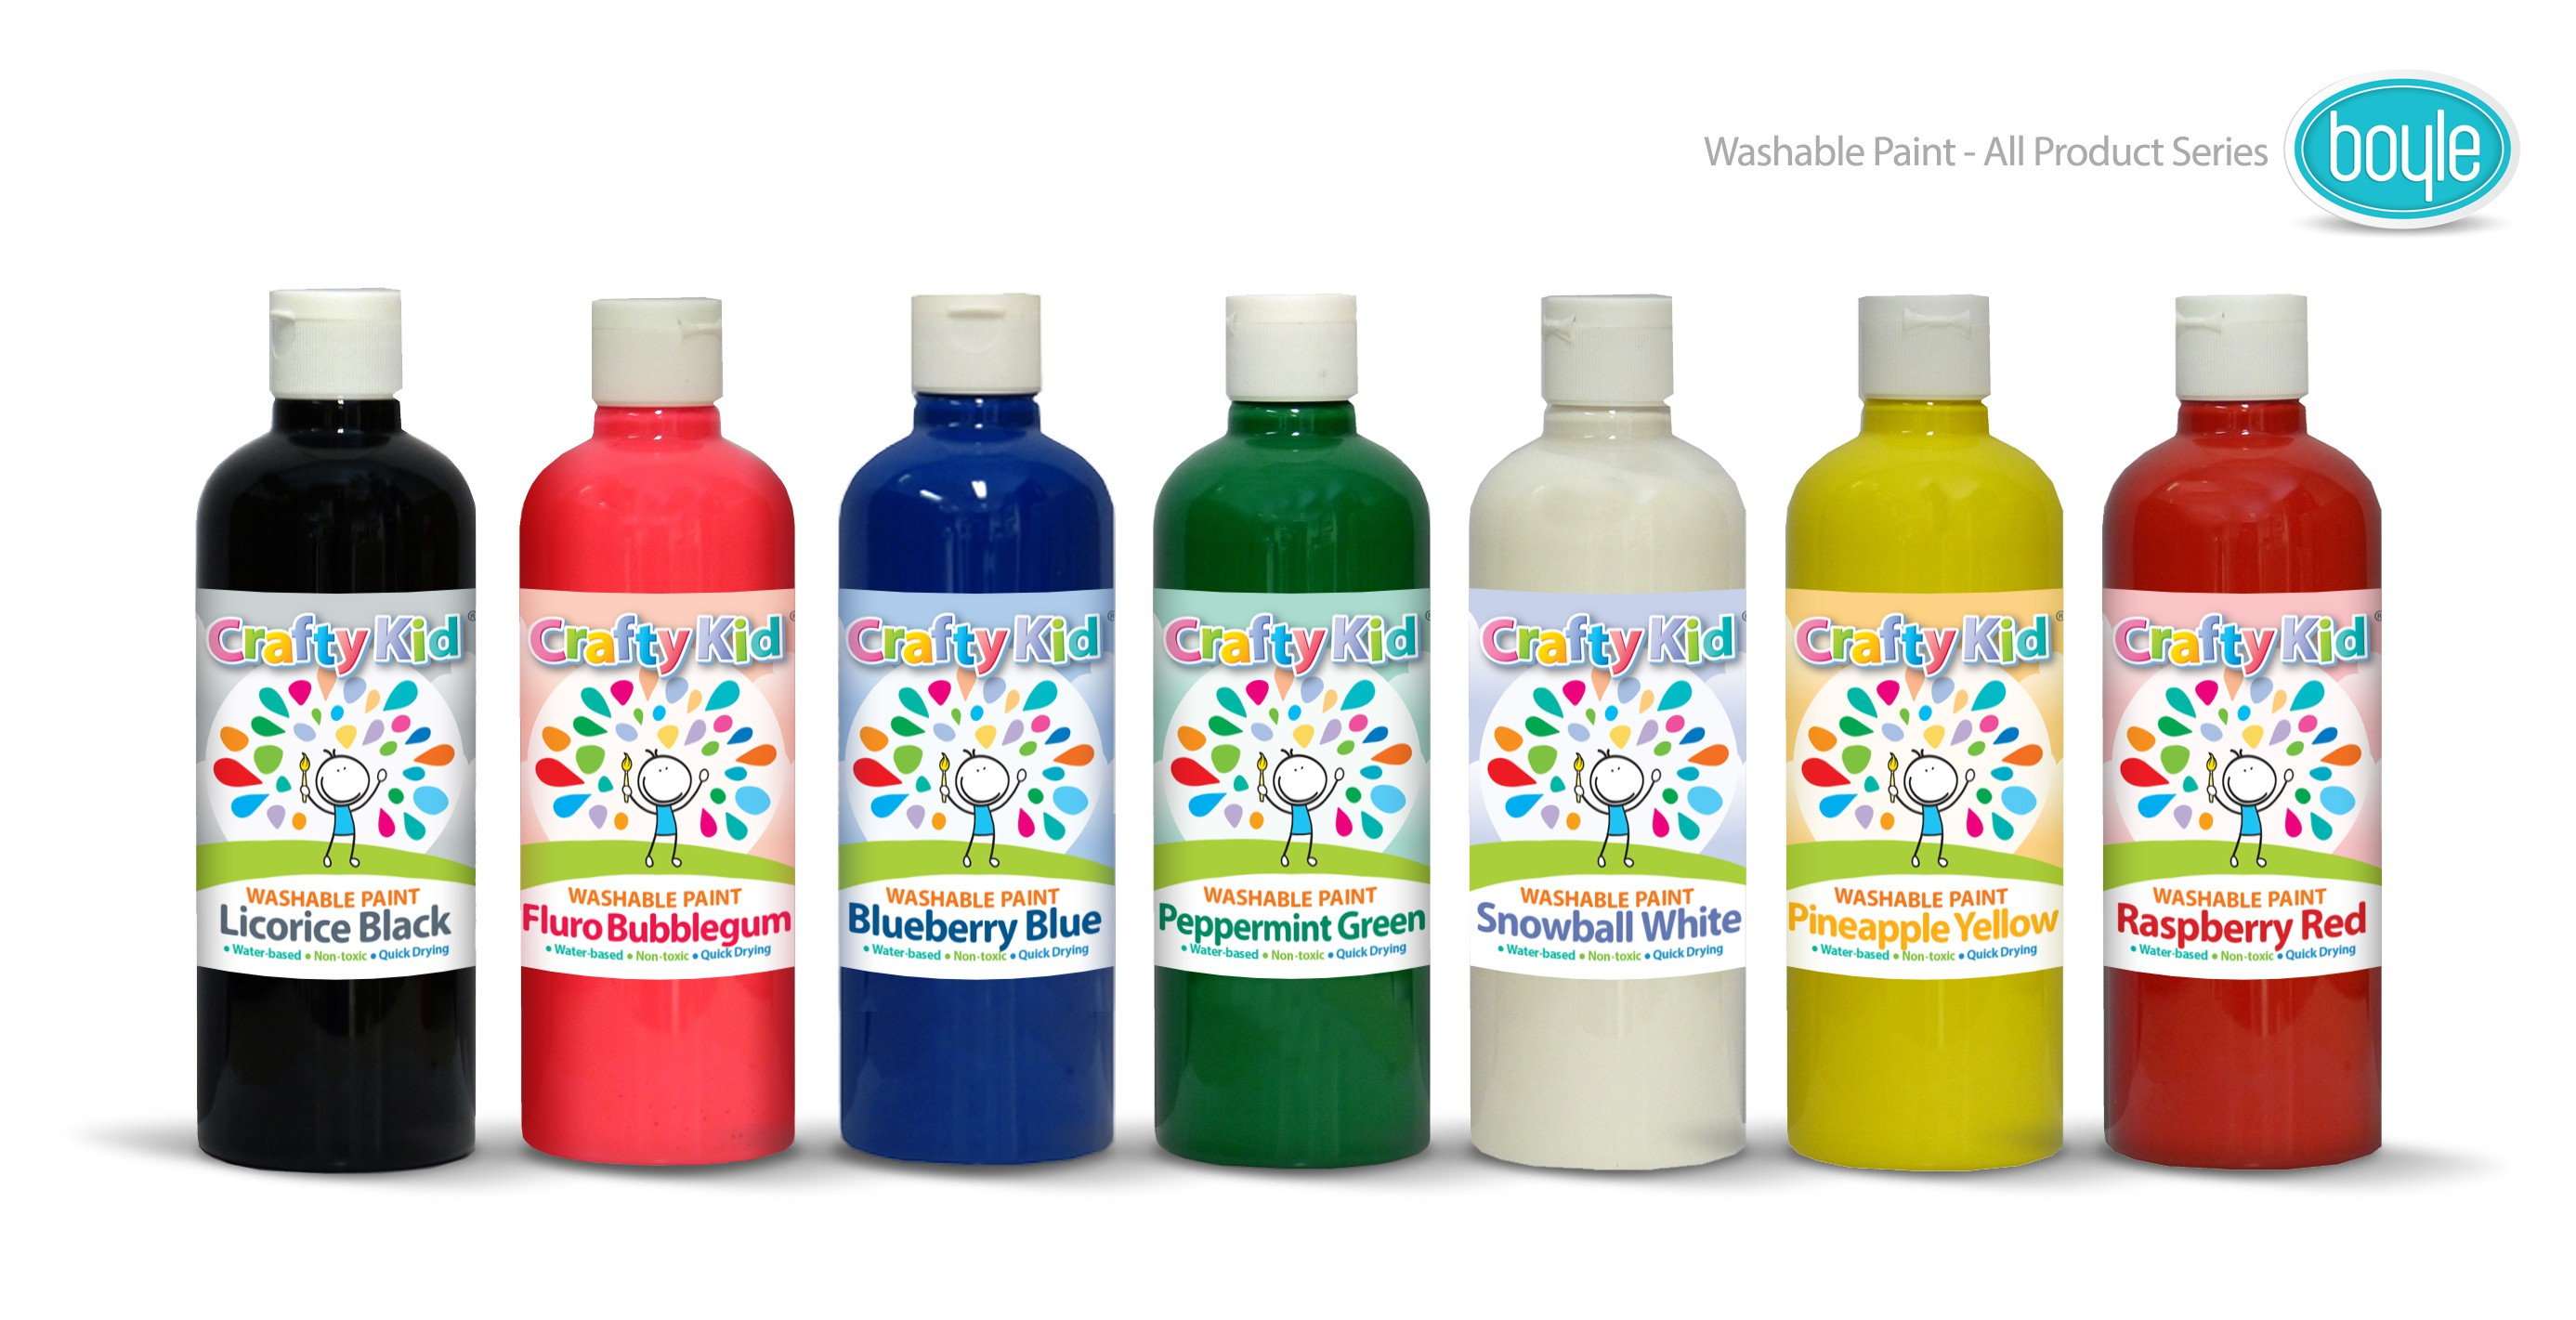 Packaging update for Crafty kid 500ml washable paint